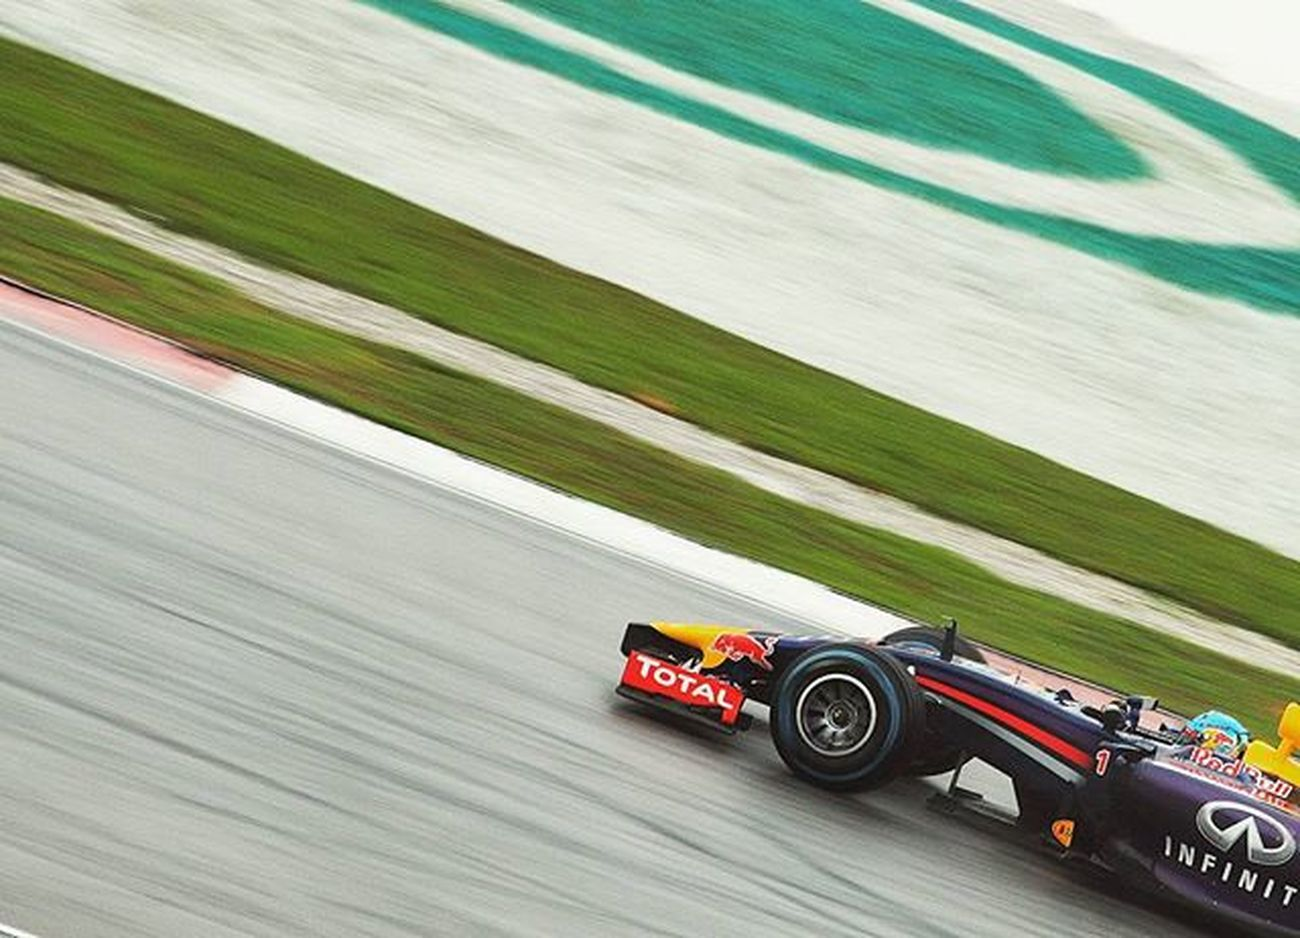 Vettel at Sepang with the RB10 || 2014 Back to back races again this week at the Mexican GP. Seems to be an unpredictable race on Sunday due to the new tarmac, higher altitude and changing weather conditions during qualifying later today. Malaysia Sepang MalaysianGP Motorsport Motorsportphotography RedBullRacing RedBull Vettel